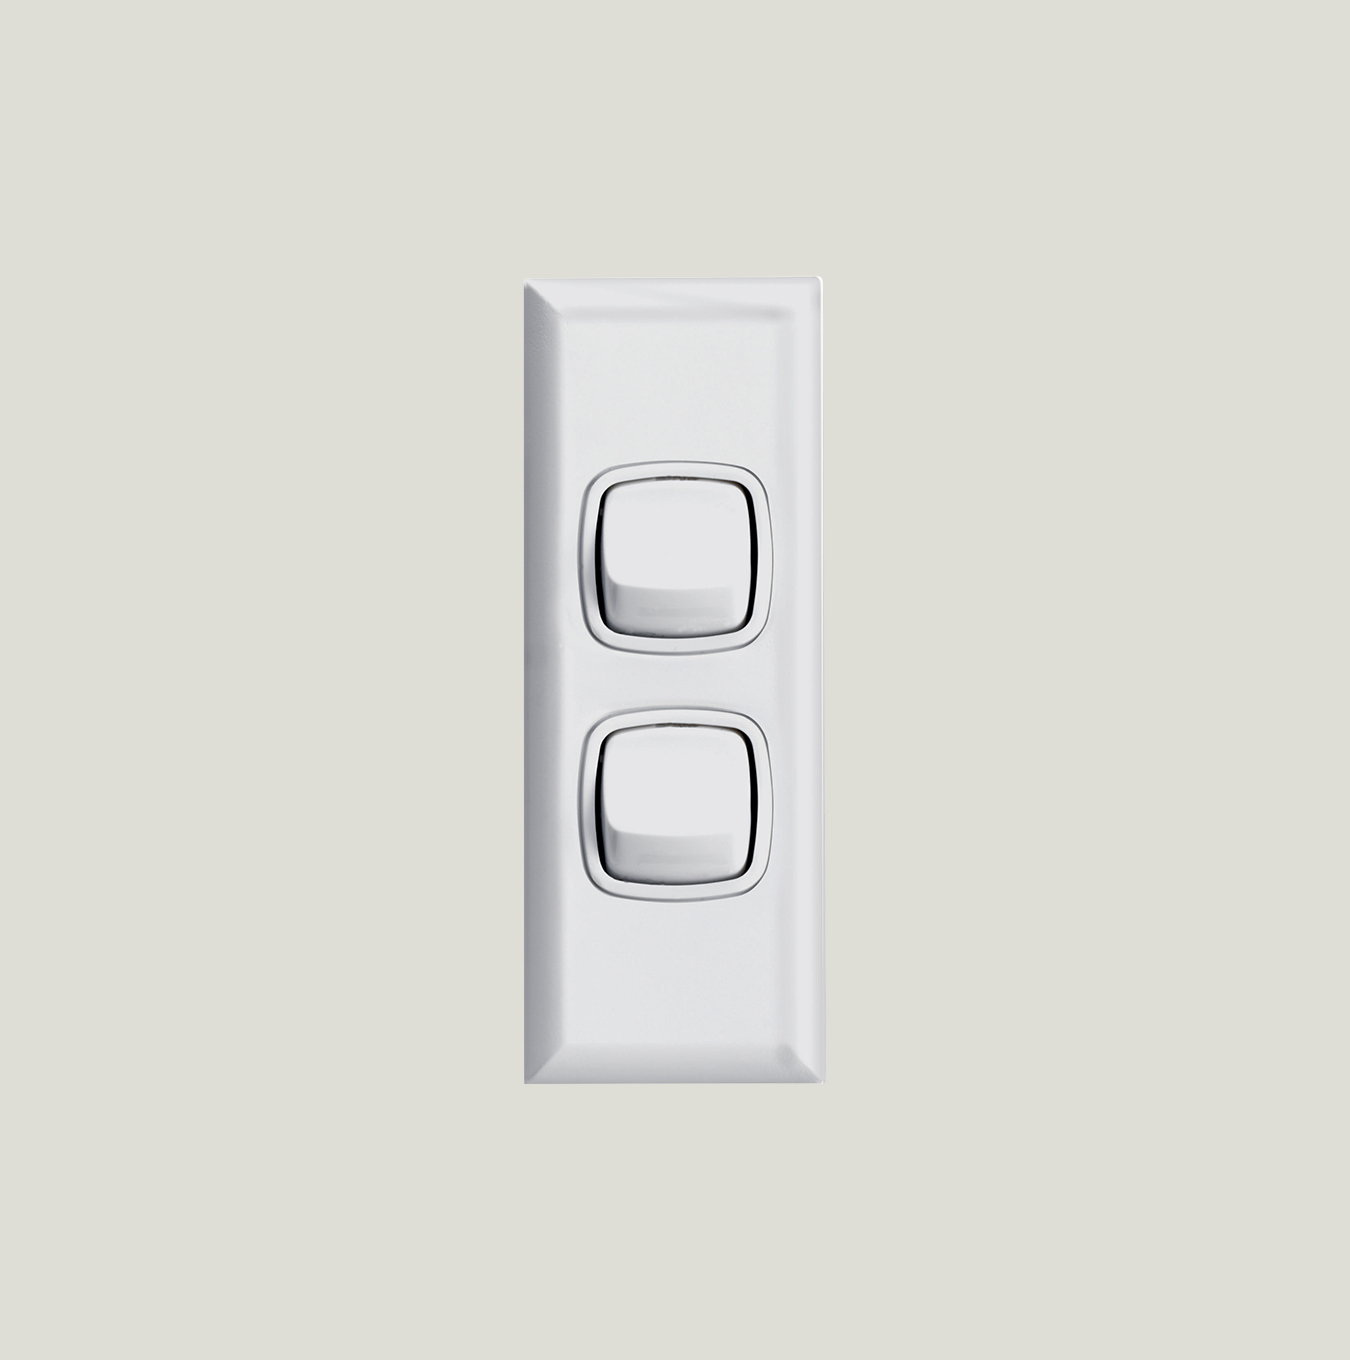 Hpm Architrave Switch Wiring Diagram